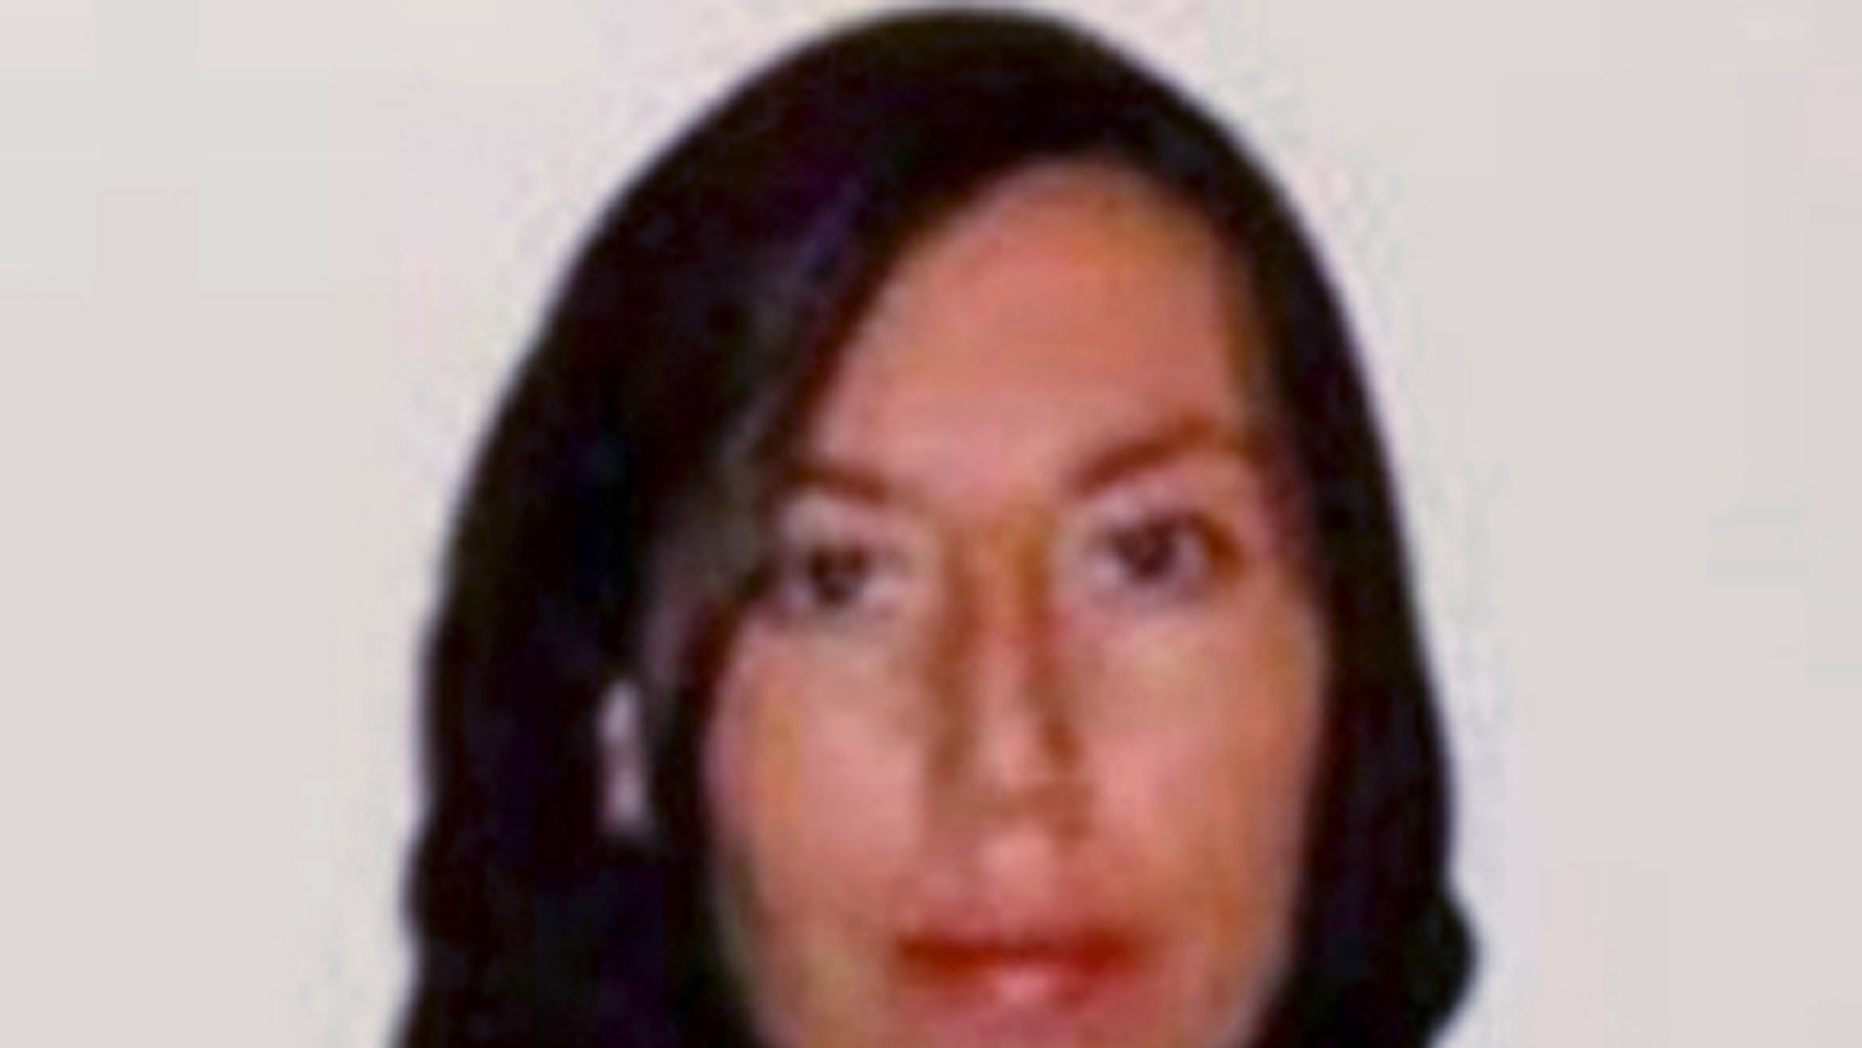 This 2013 photo released by the Department of Justice shows Monica Elfriede Witt.  The Justice Department on Wednesday announced an indictment against Monica Elfriede Witt, who defected to Iran in 2013 and is currently at-large. (Department of Justice via AP)